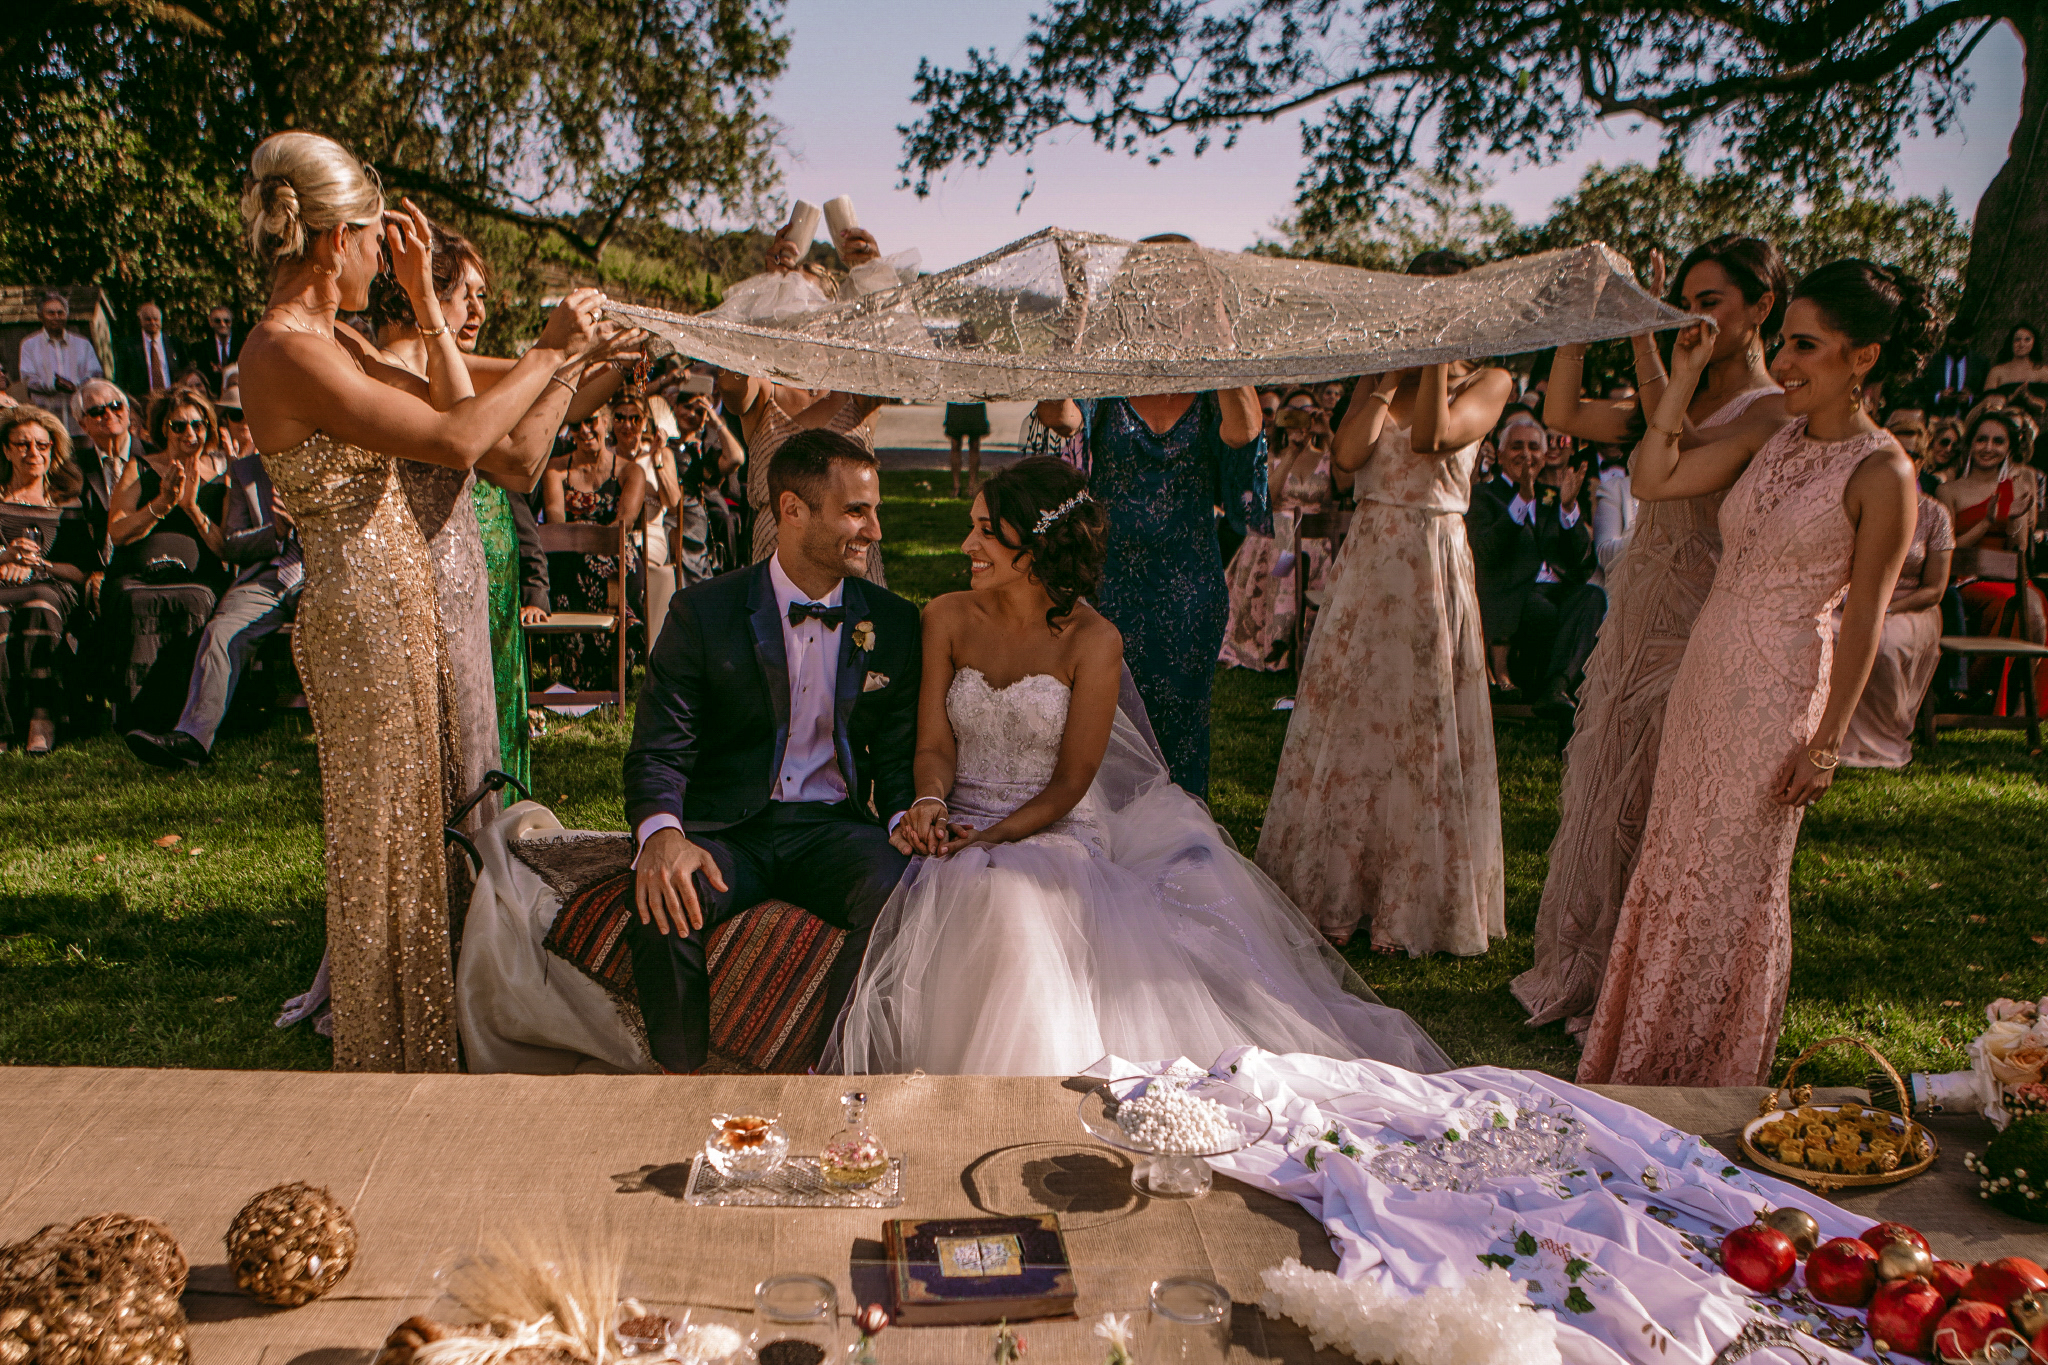 san diego wedding   photographer | married couple sitting down smiling looking at each other   under cloth being help up by women